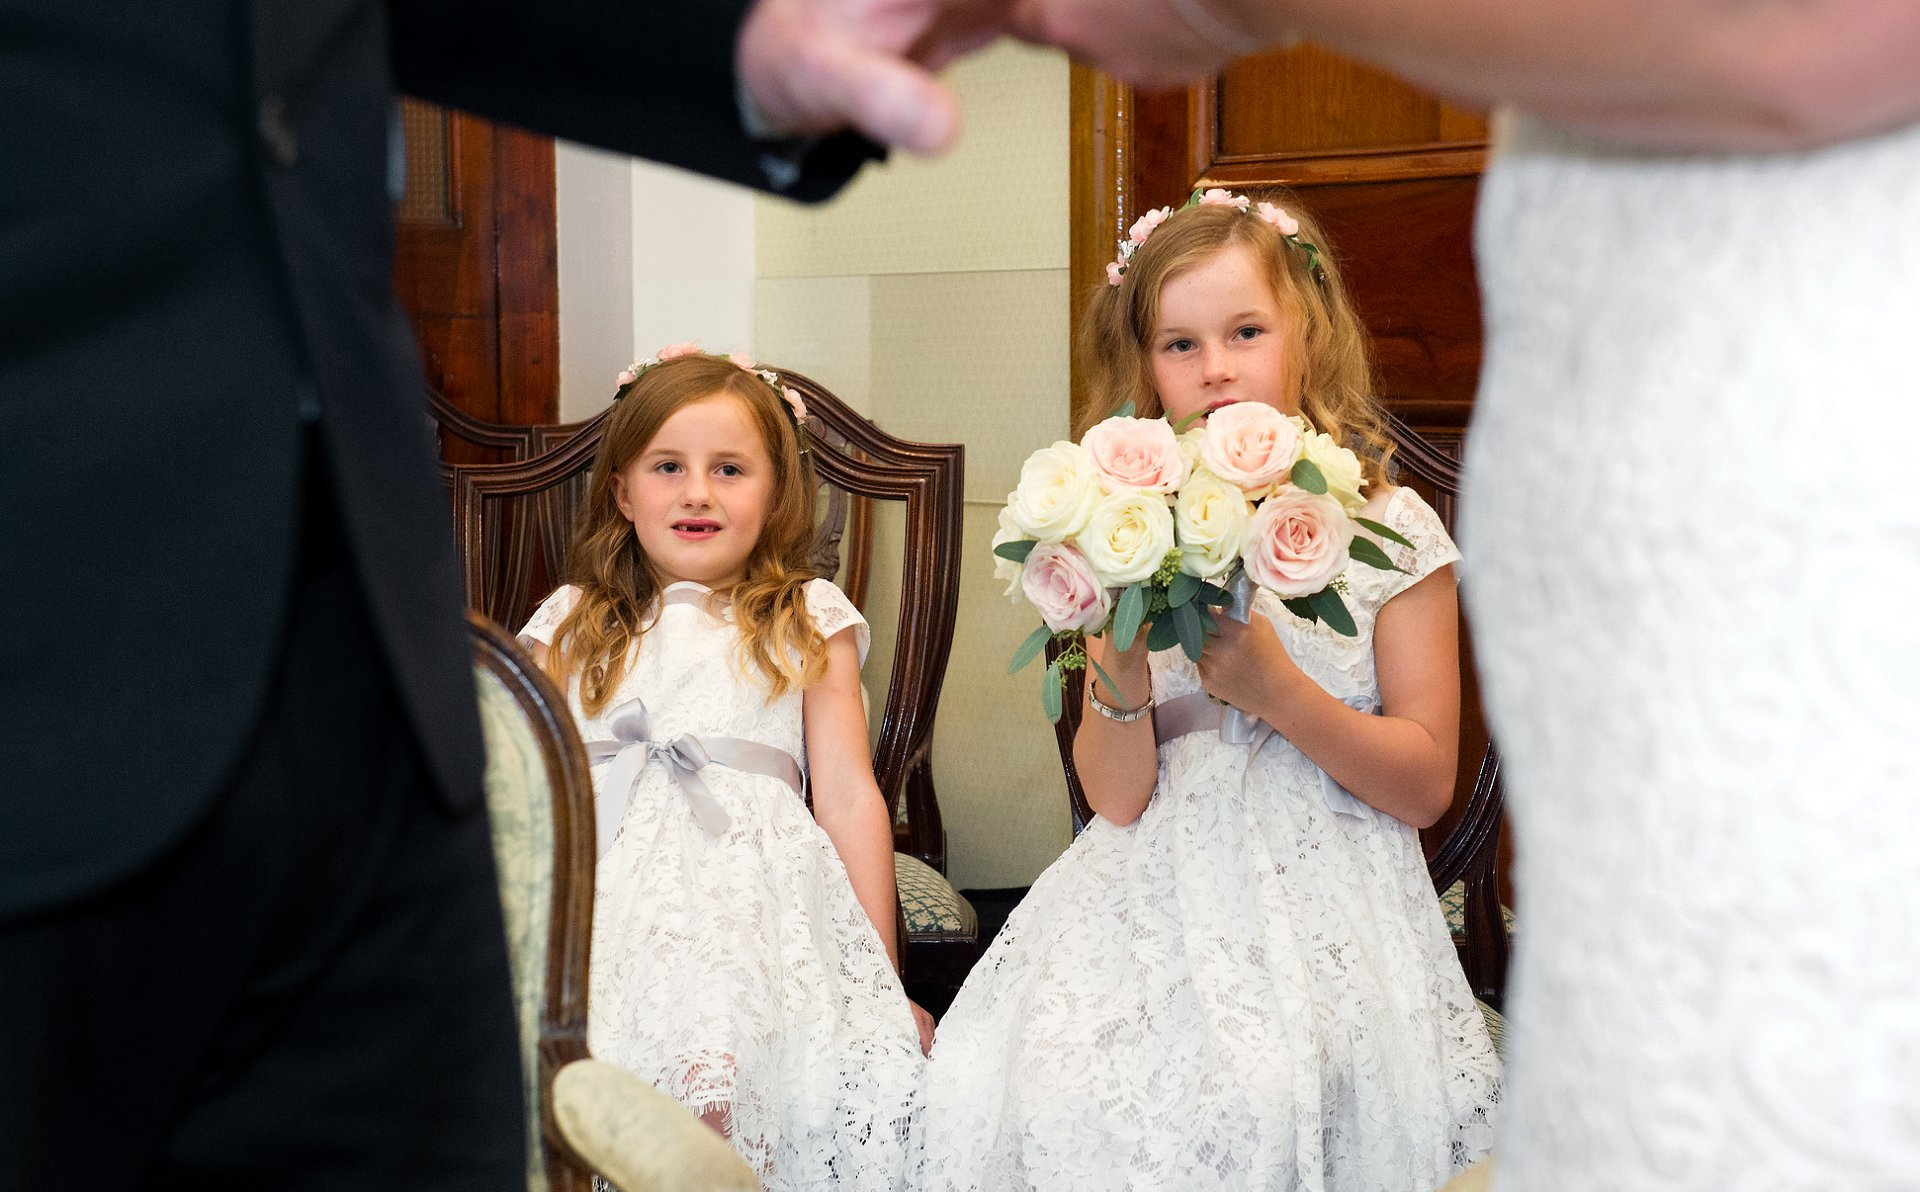 Daughters look on as their parents marry in the Rossetti Room at Chelsea Town Hall